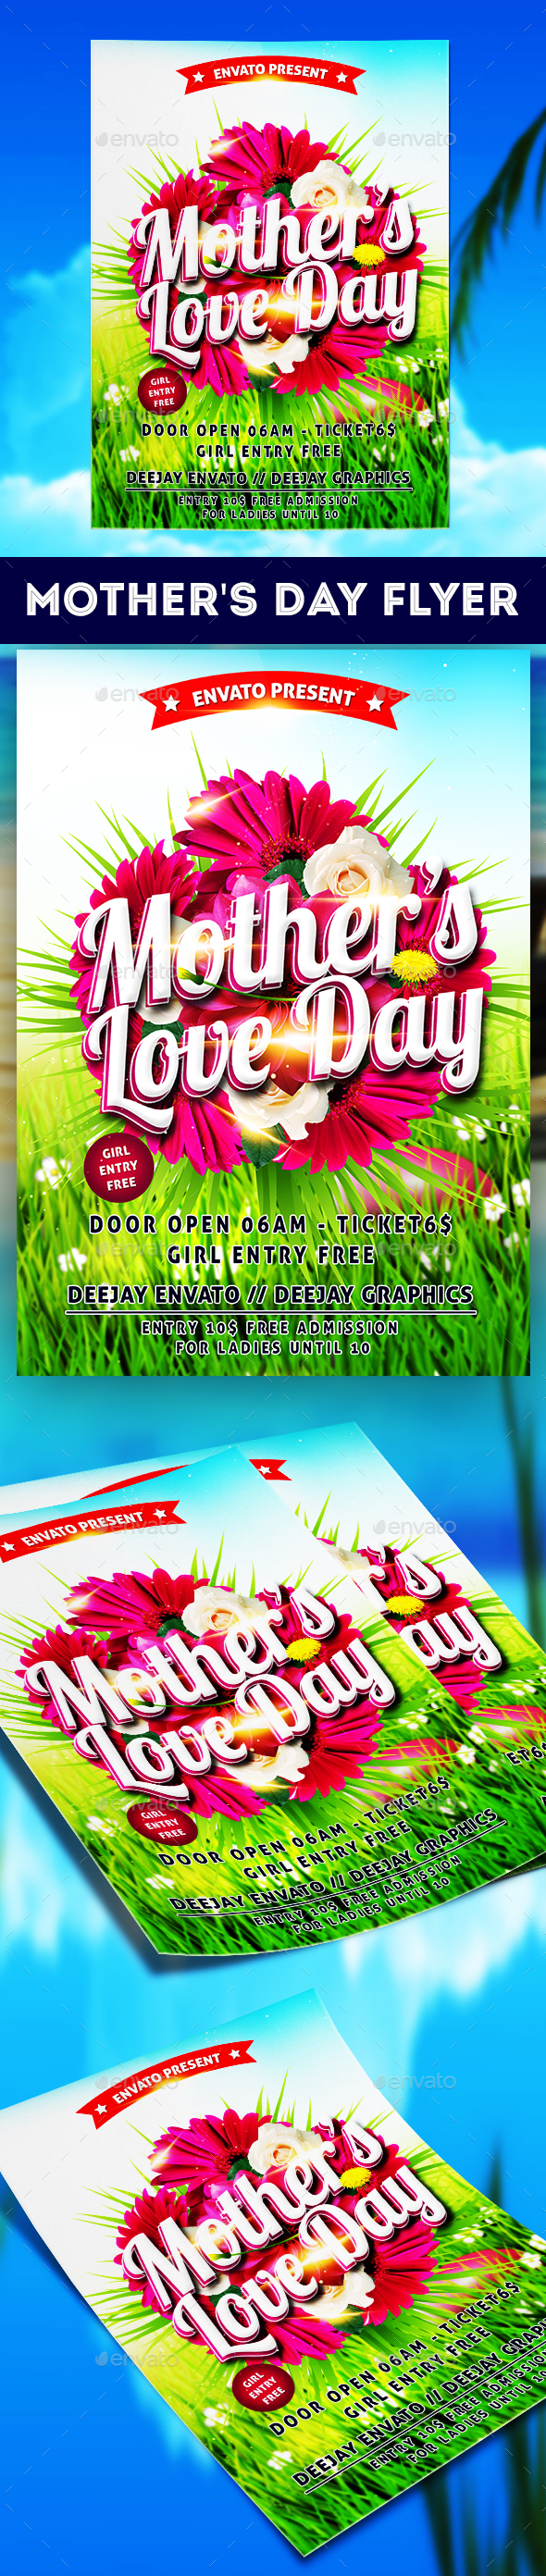 Mothers Day Flyer - Church Flyers